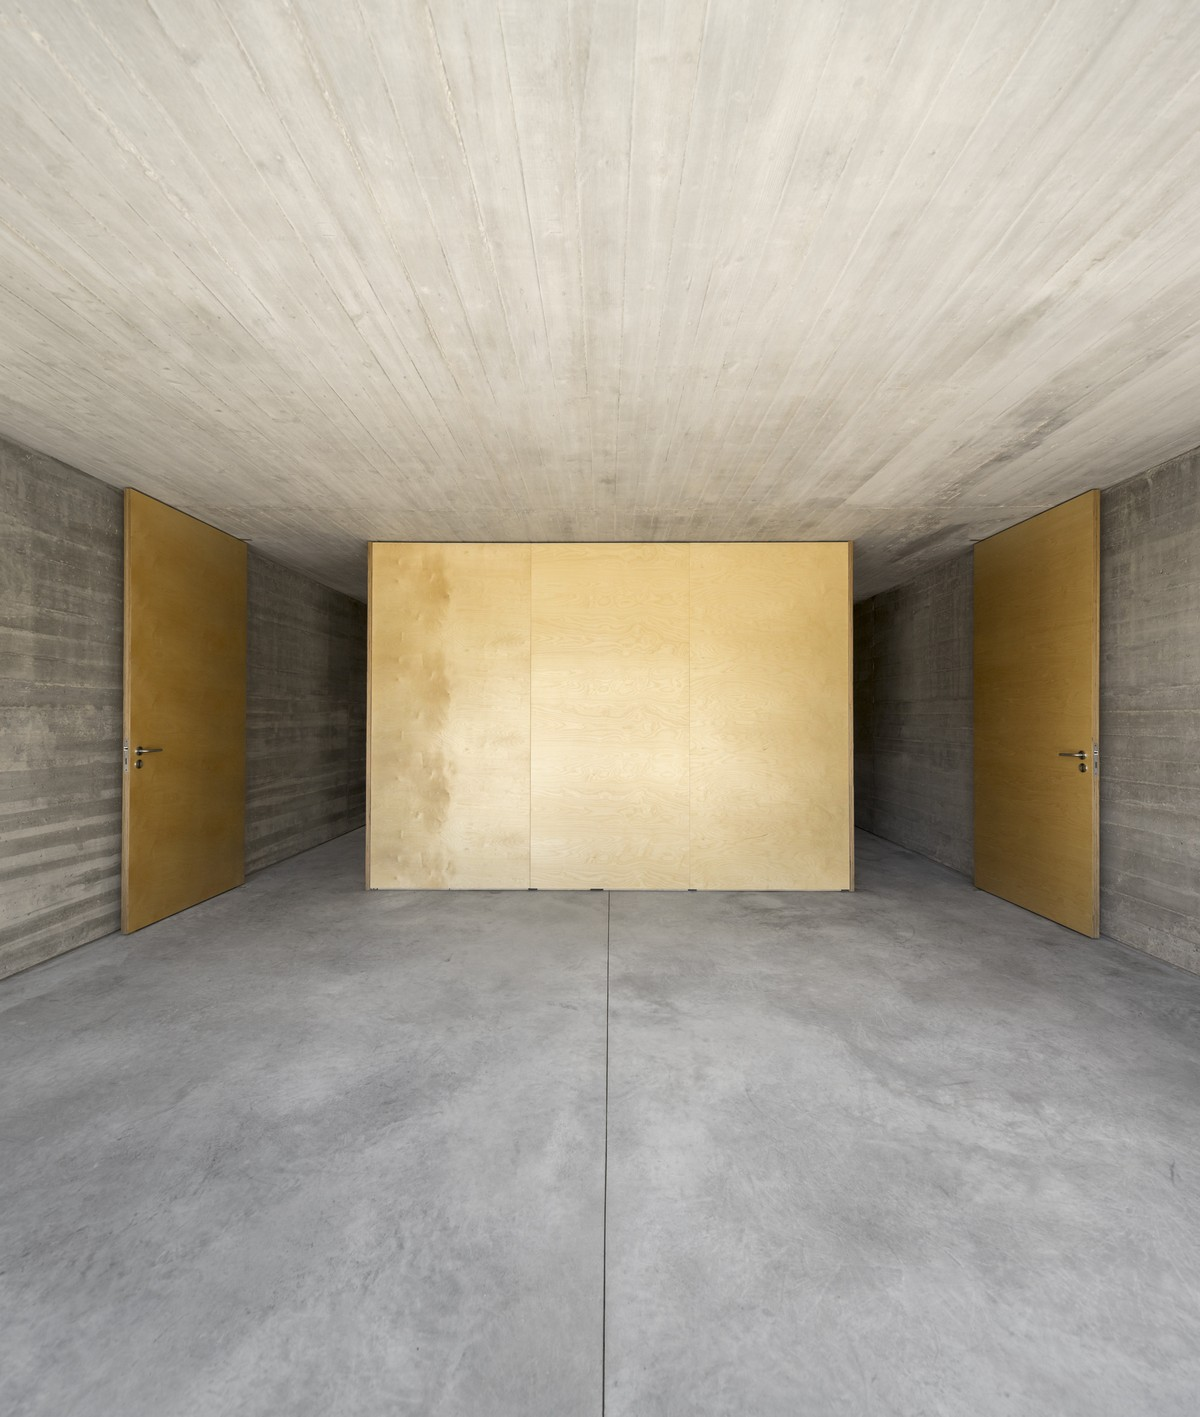 Discover The Minimalistic Architecture Of This Lisbon House minimalistic architecture Discover The Minimalistic Architecture Of This Lisbon House Discover The Minimalistic Architecture Of This Lisbon House 2